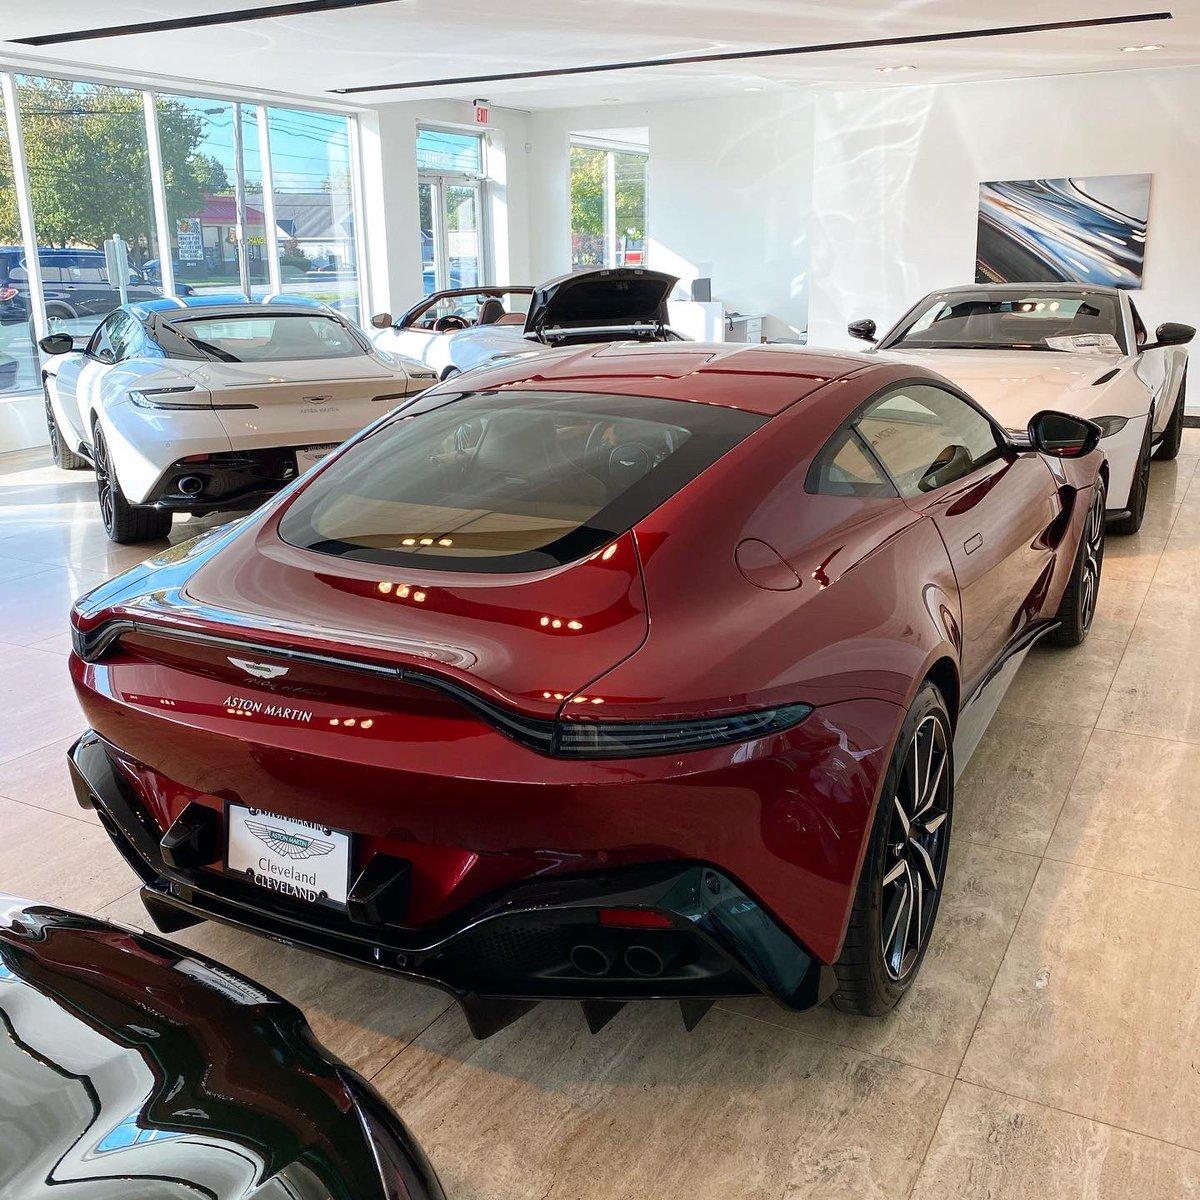 Aston Martin Cle Astonmartin Cle Twitter